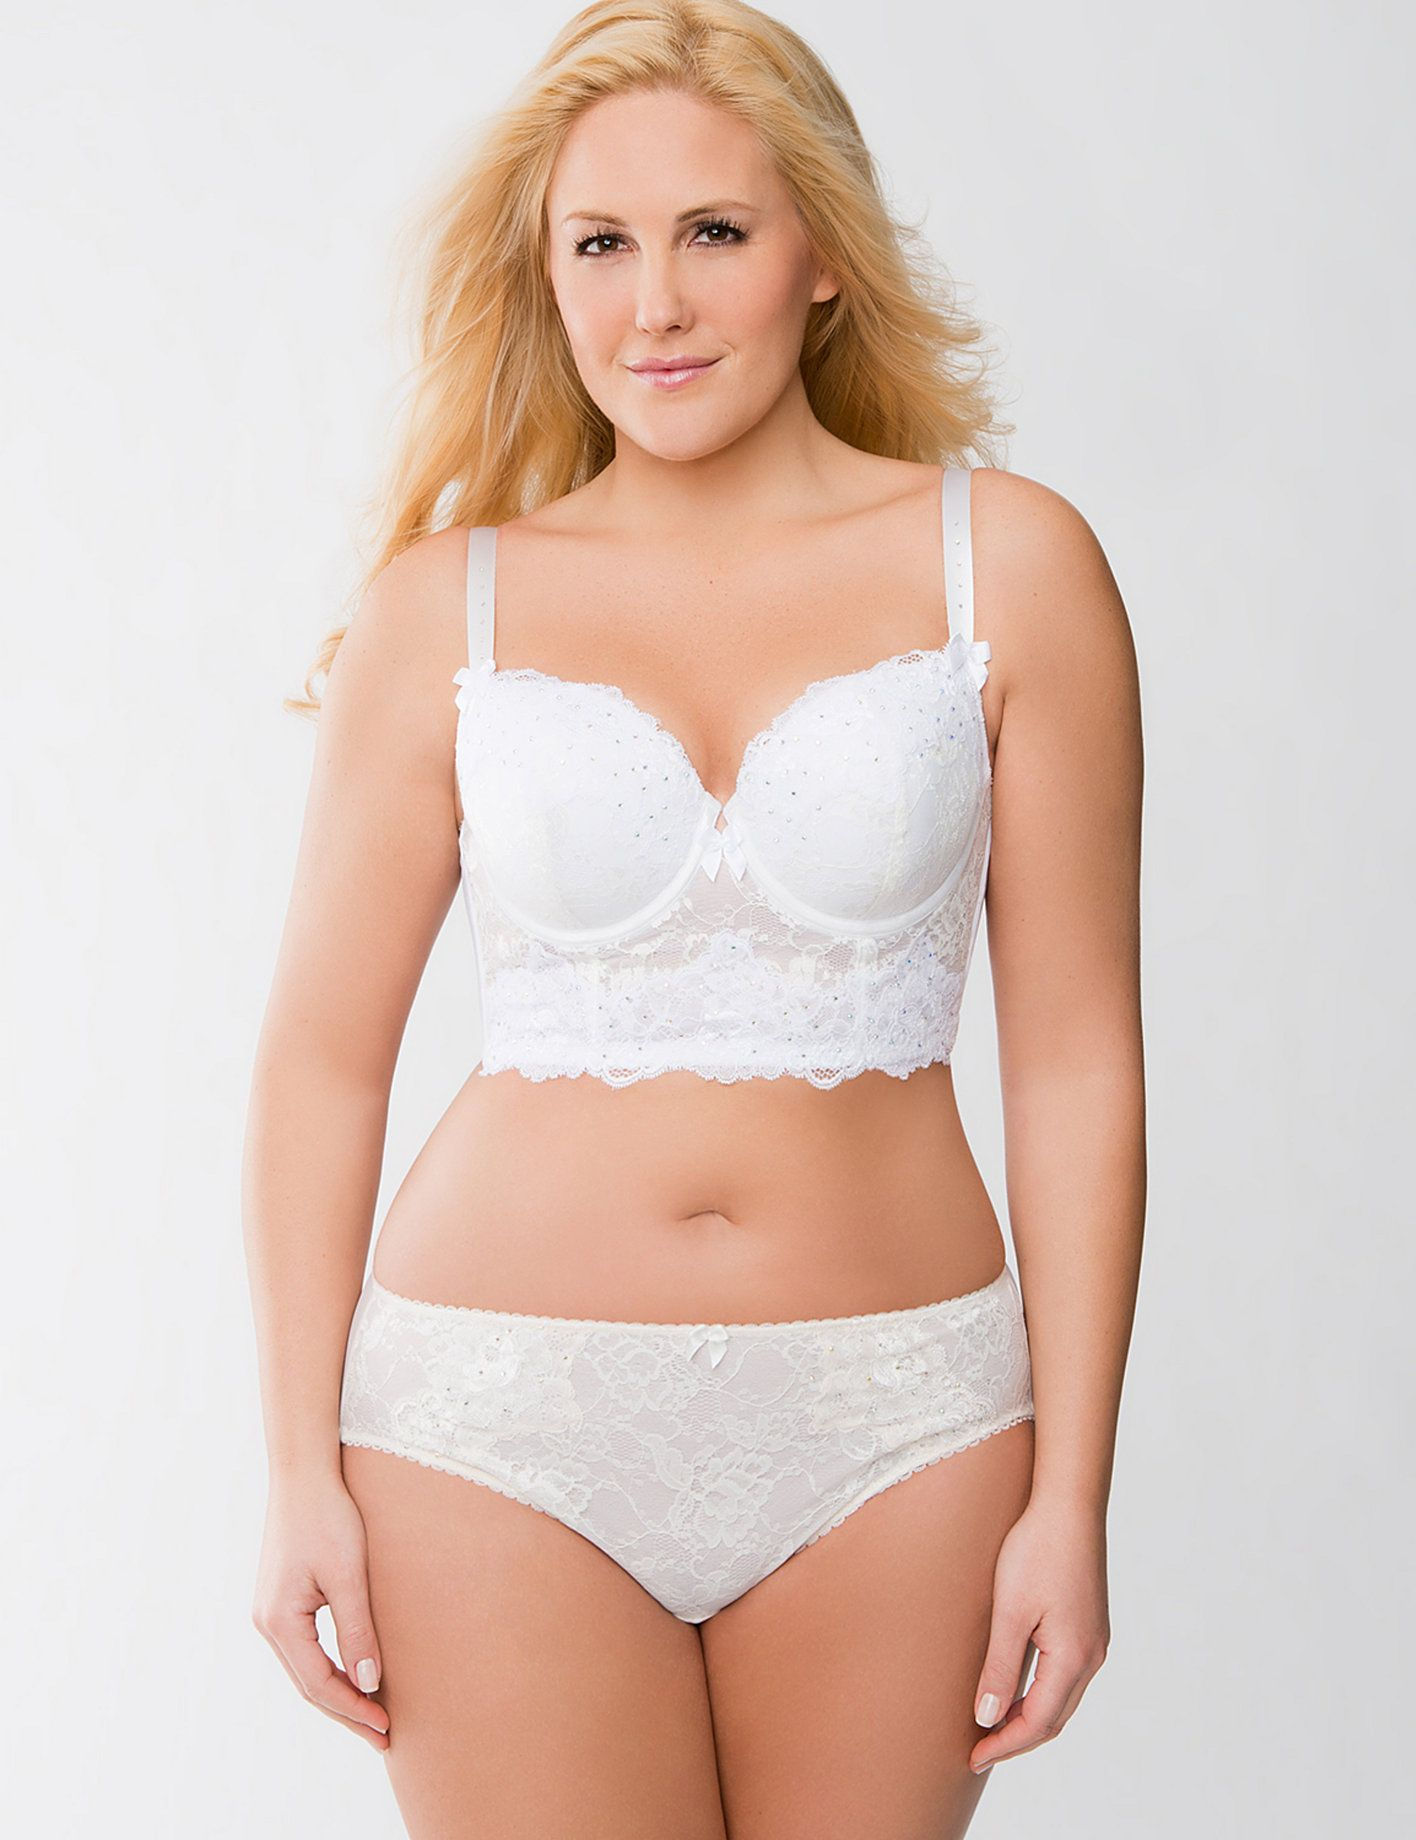 Plus Size Bridal Lingerie - Corsets Underwear for Plus Size Brides ...